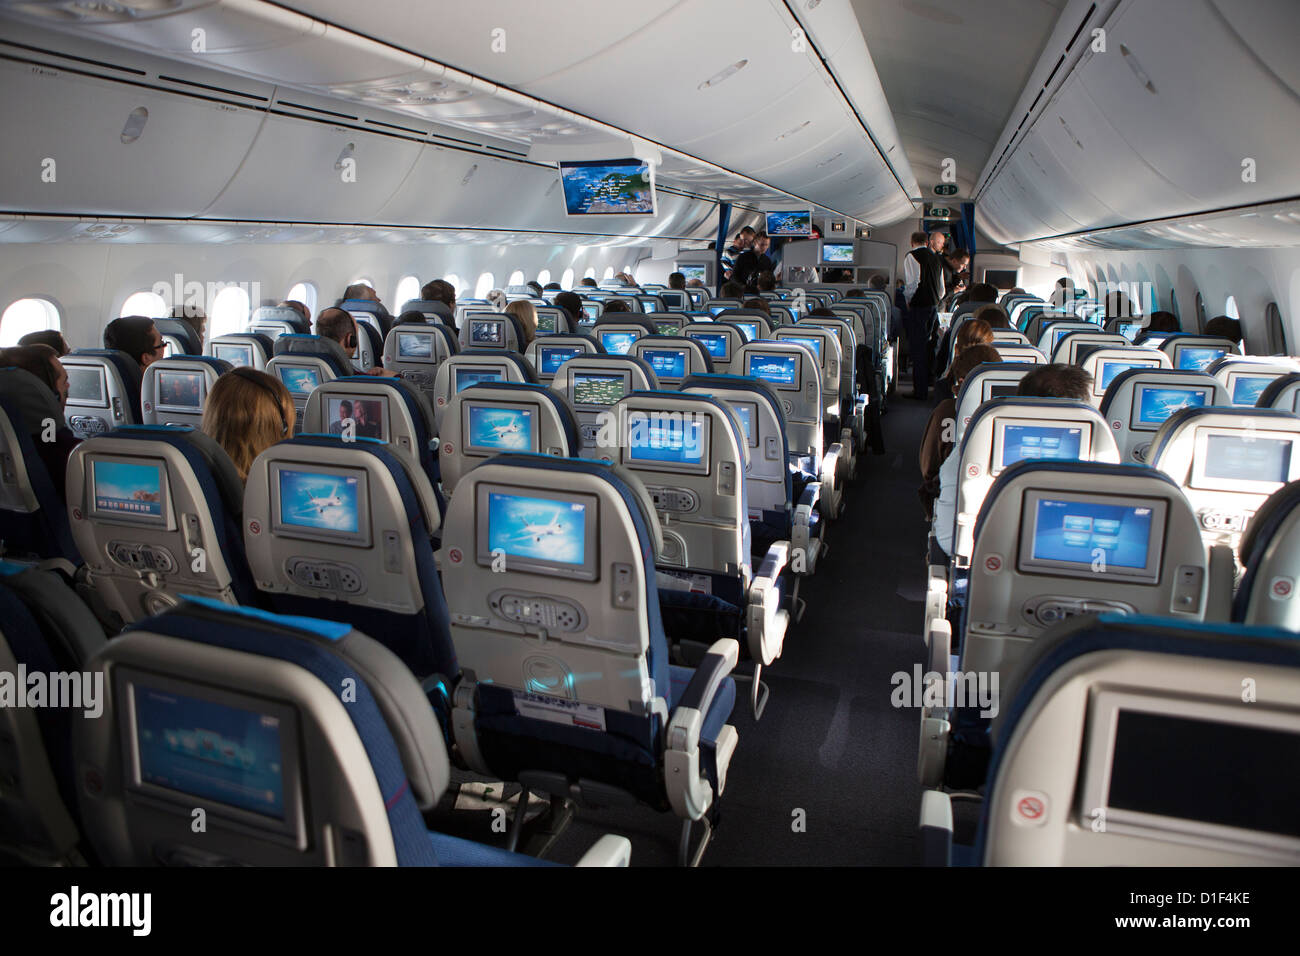 Interieur, Boeing 787 Dreamliner Stockfoto, Bild: 52578722 - Alamy